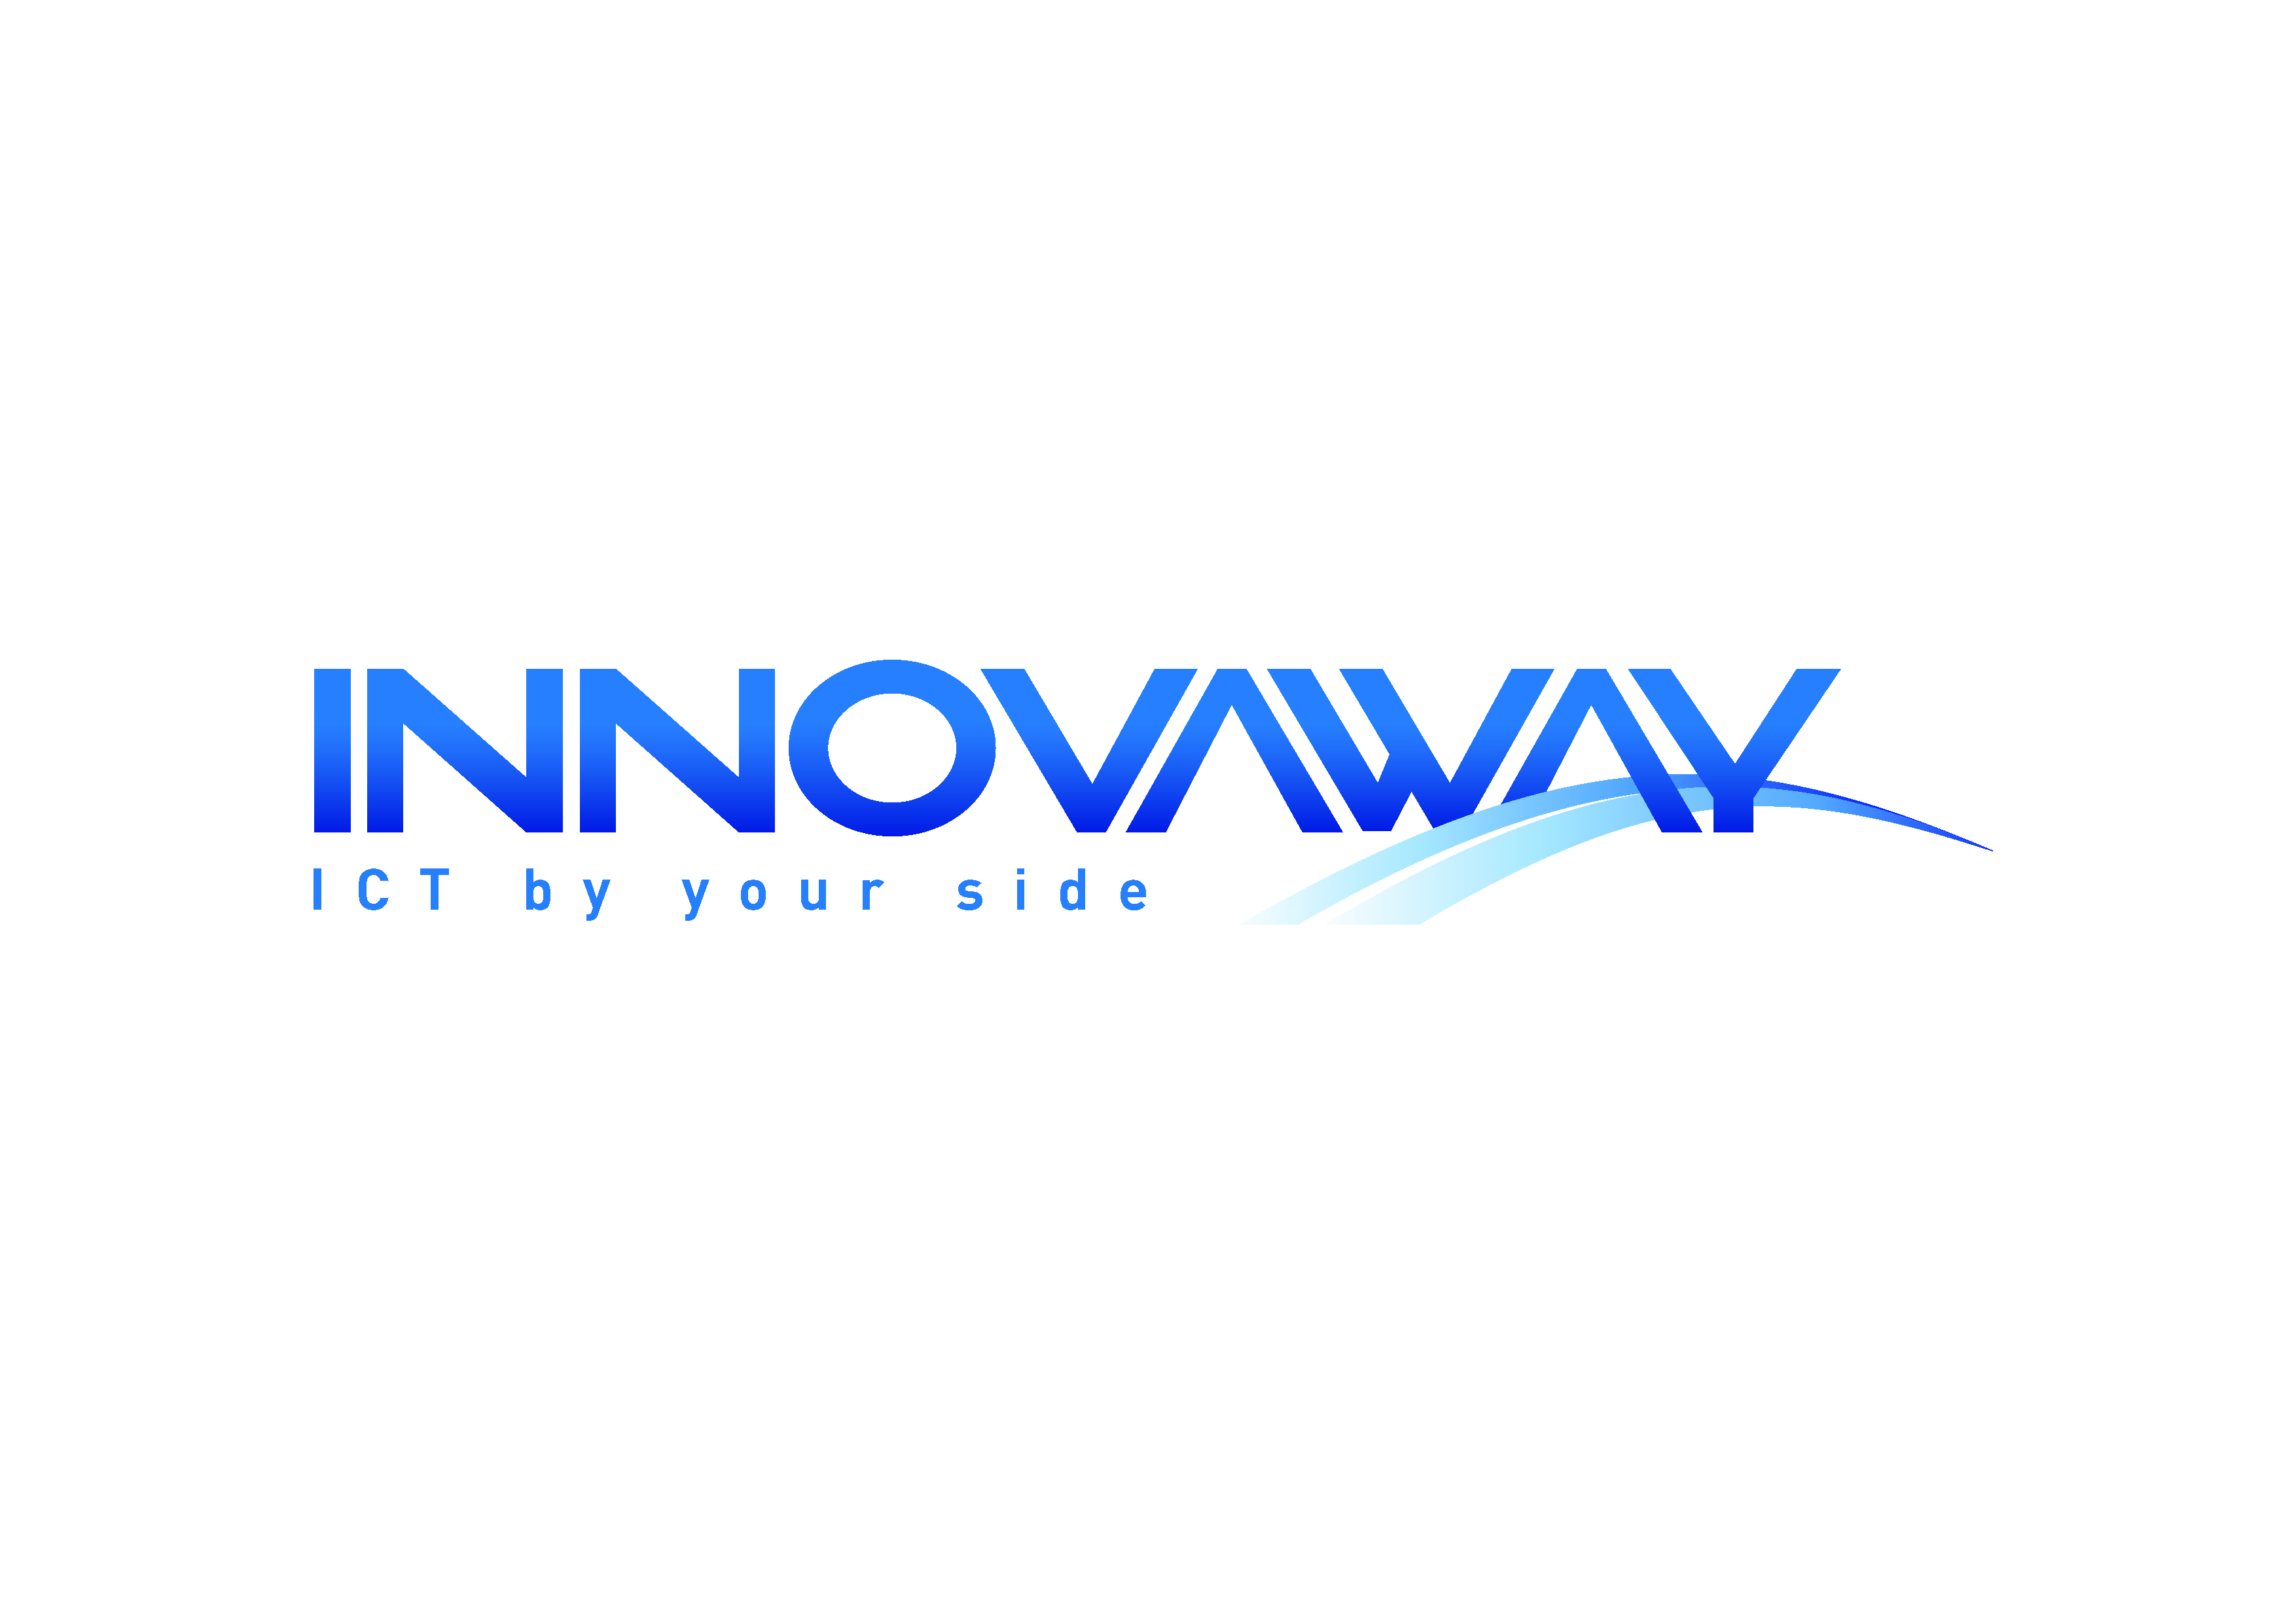 Innovaway_marchio